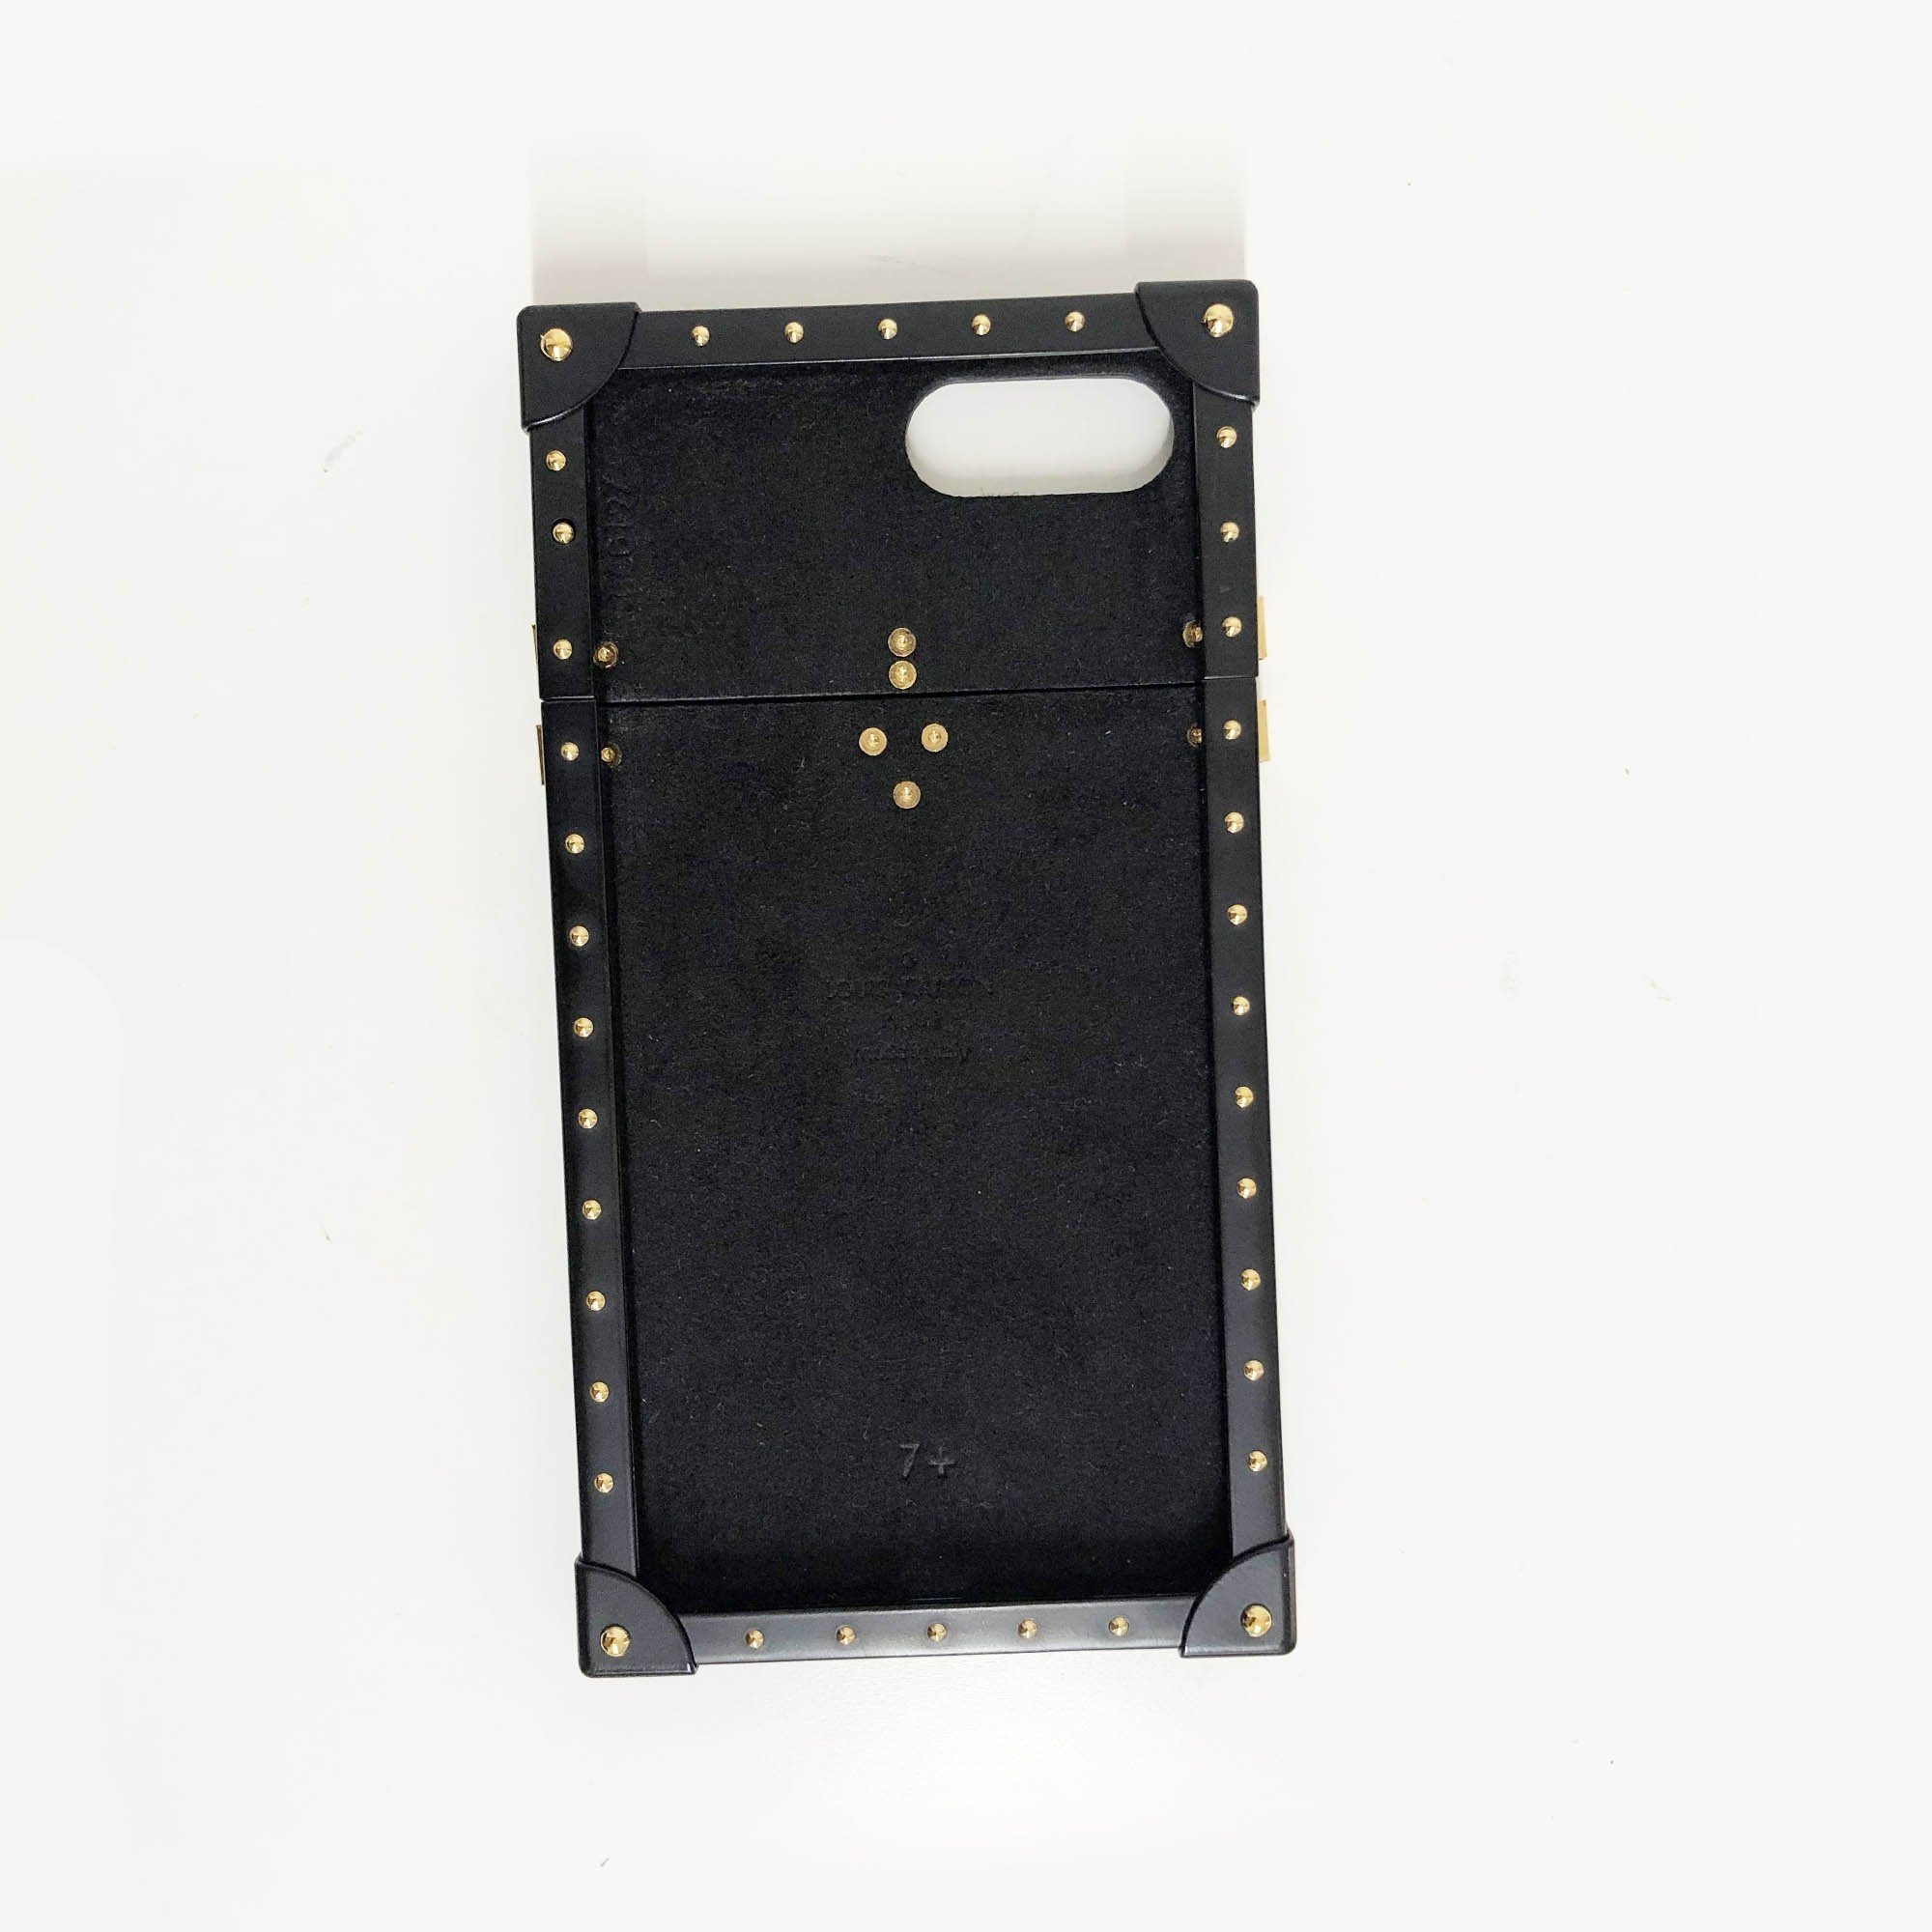 Louis Vuitton Monogram Eye-Trunk iPhone 7 Plus Case